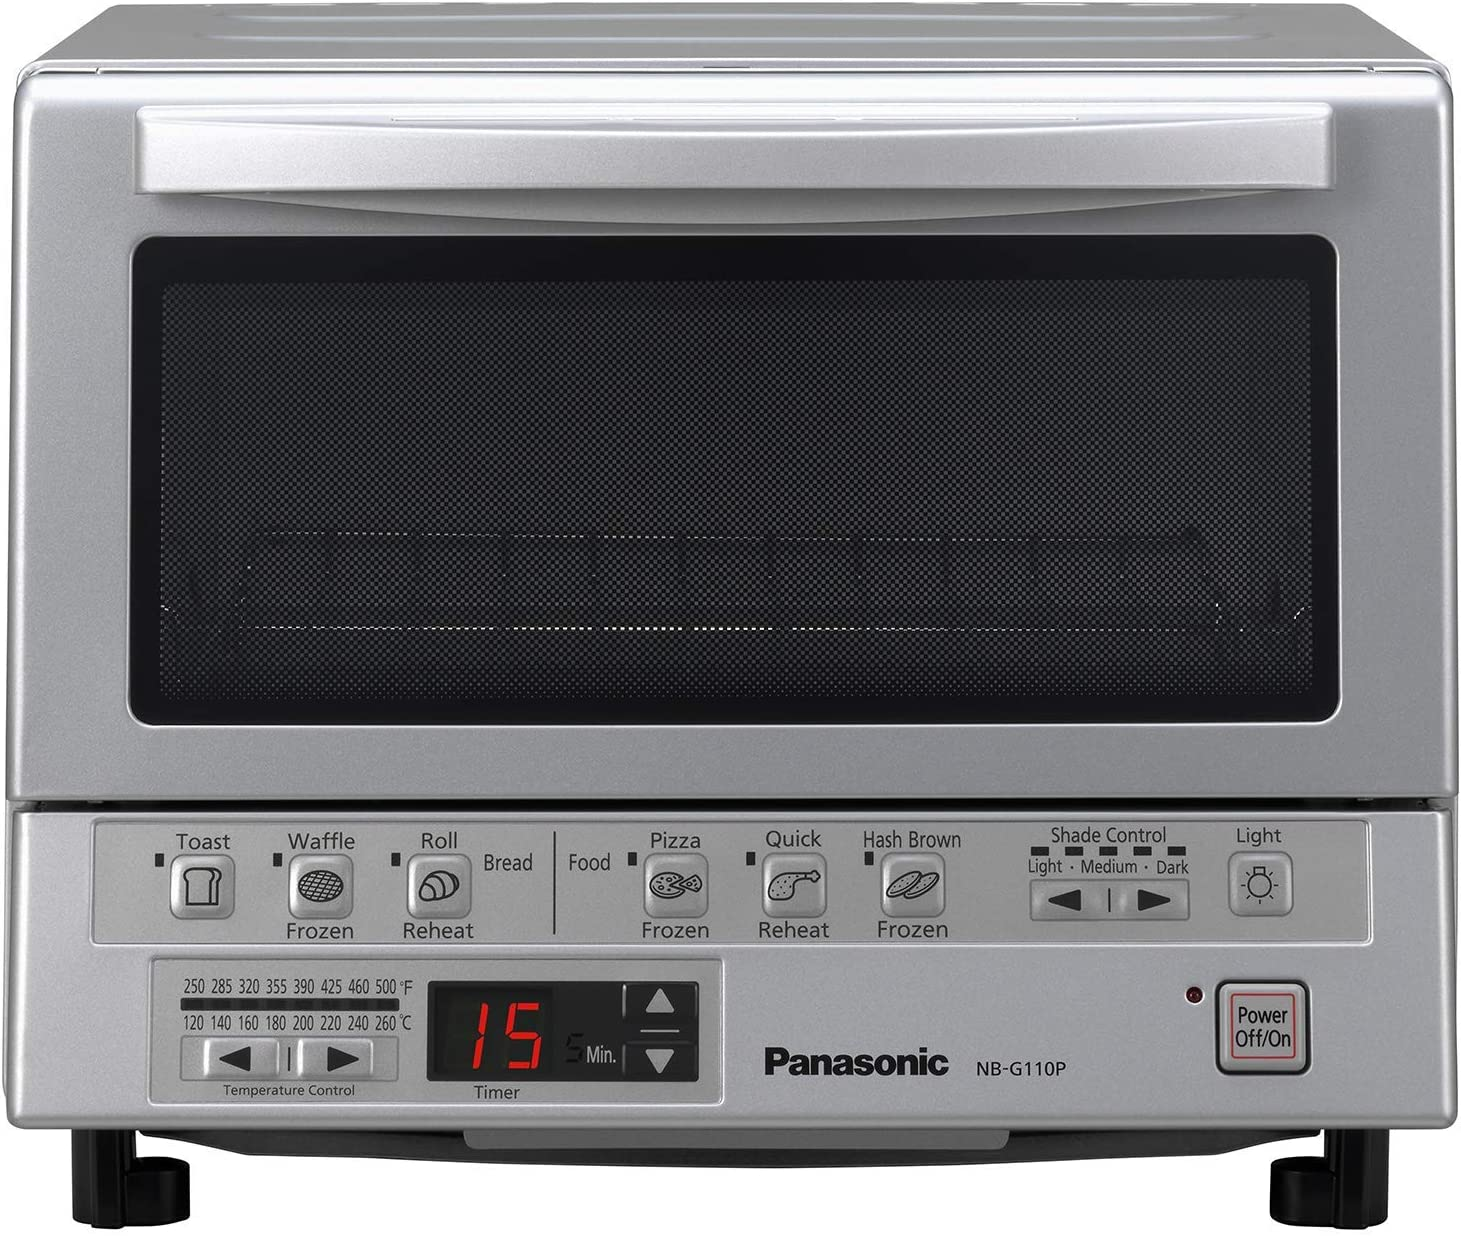 Panasonic FlashXpress Compact Toaster Oven with Double Infrared Heating, Crumb Tray and 1300 Watts of Cooking Power - 4 Slice Countertop Toaster Oven - NB-G110P (Stainless Steel) (Renewed)